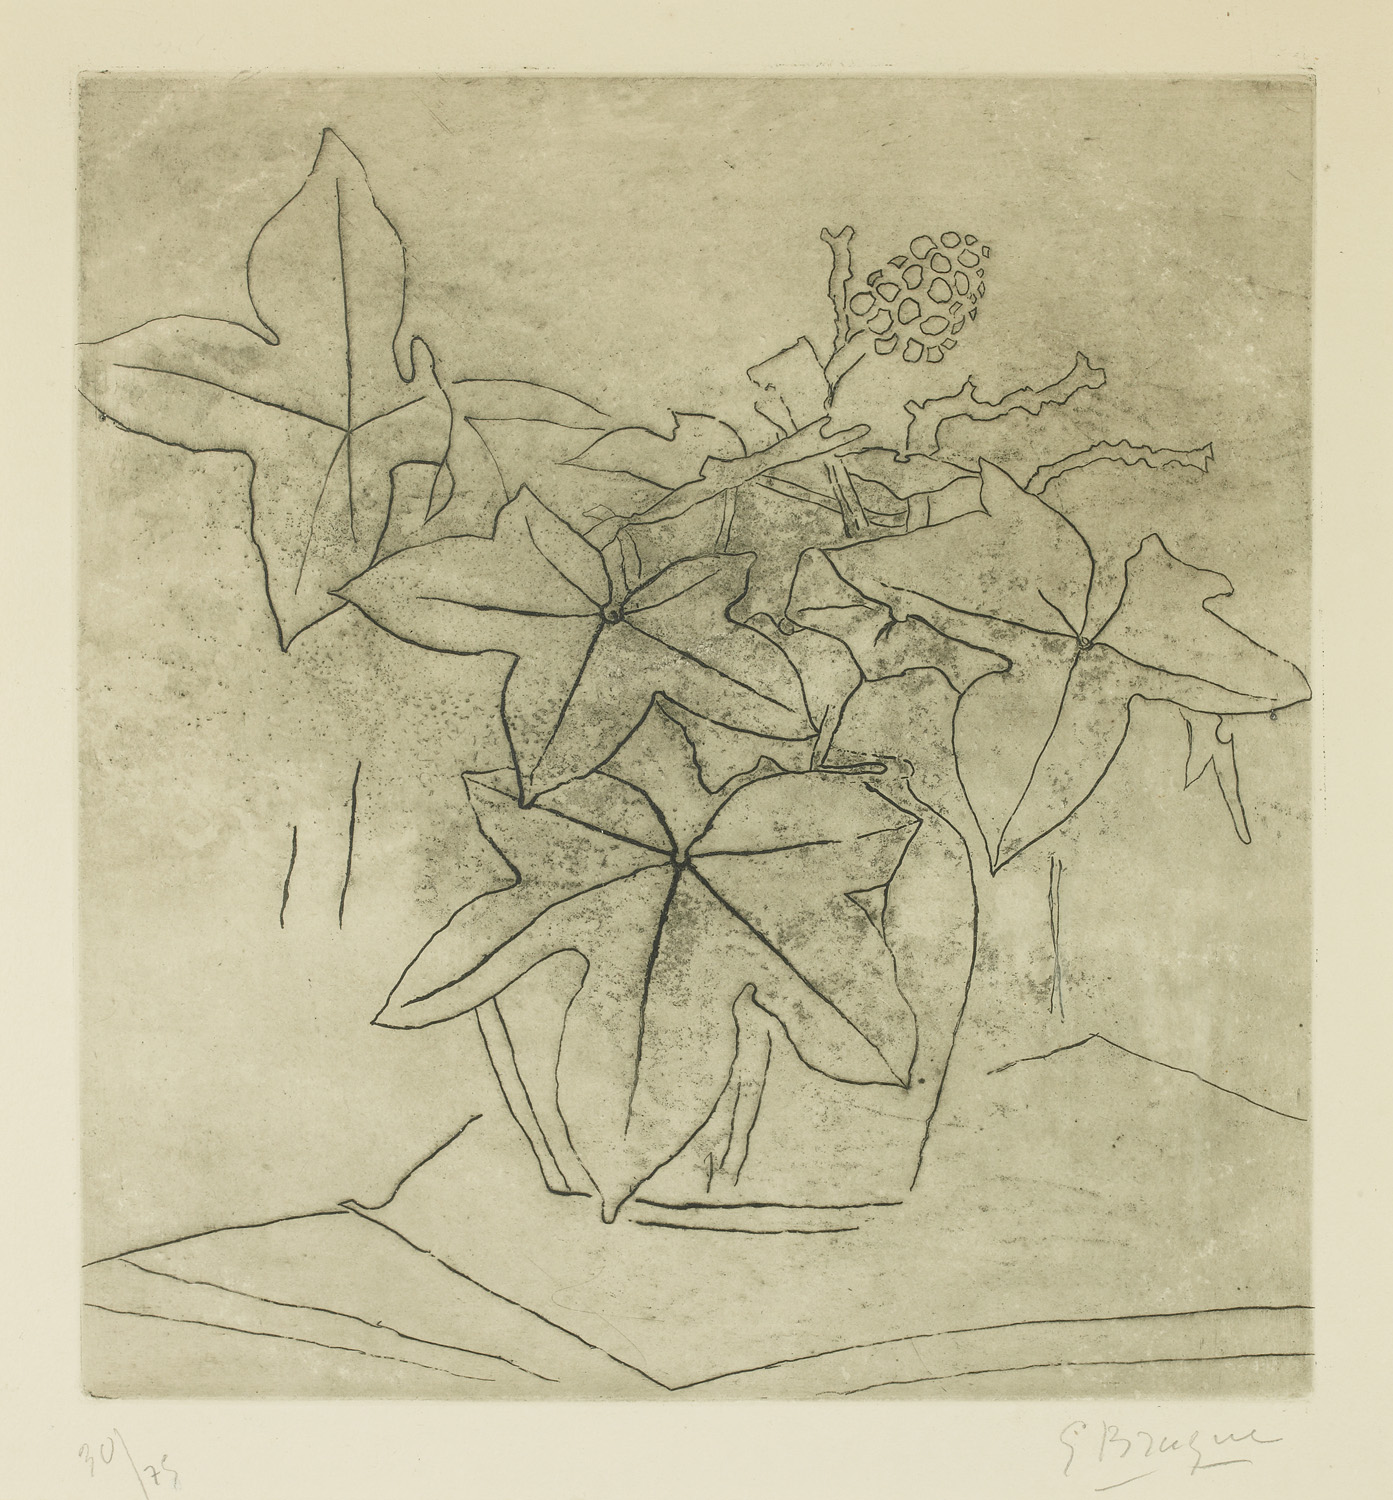 Georges Braque, Le Lierre, etching, 1955